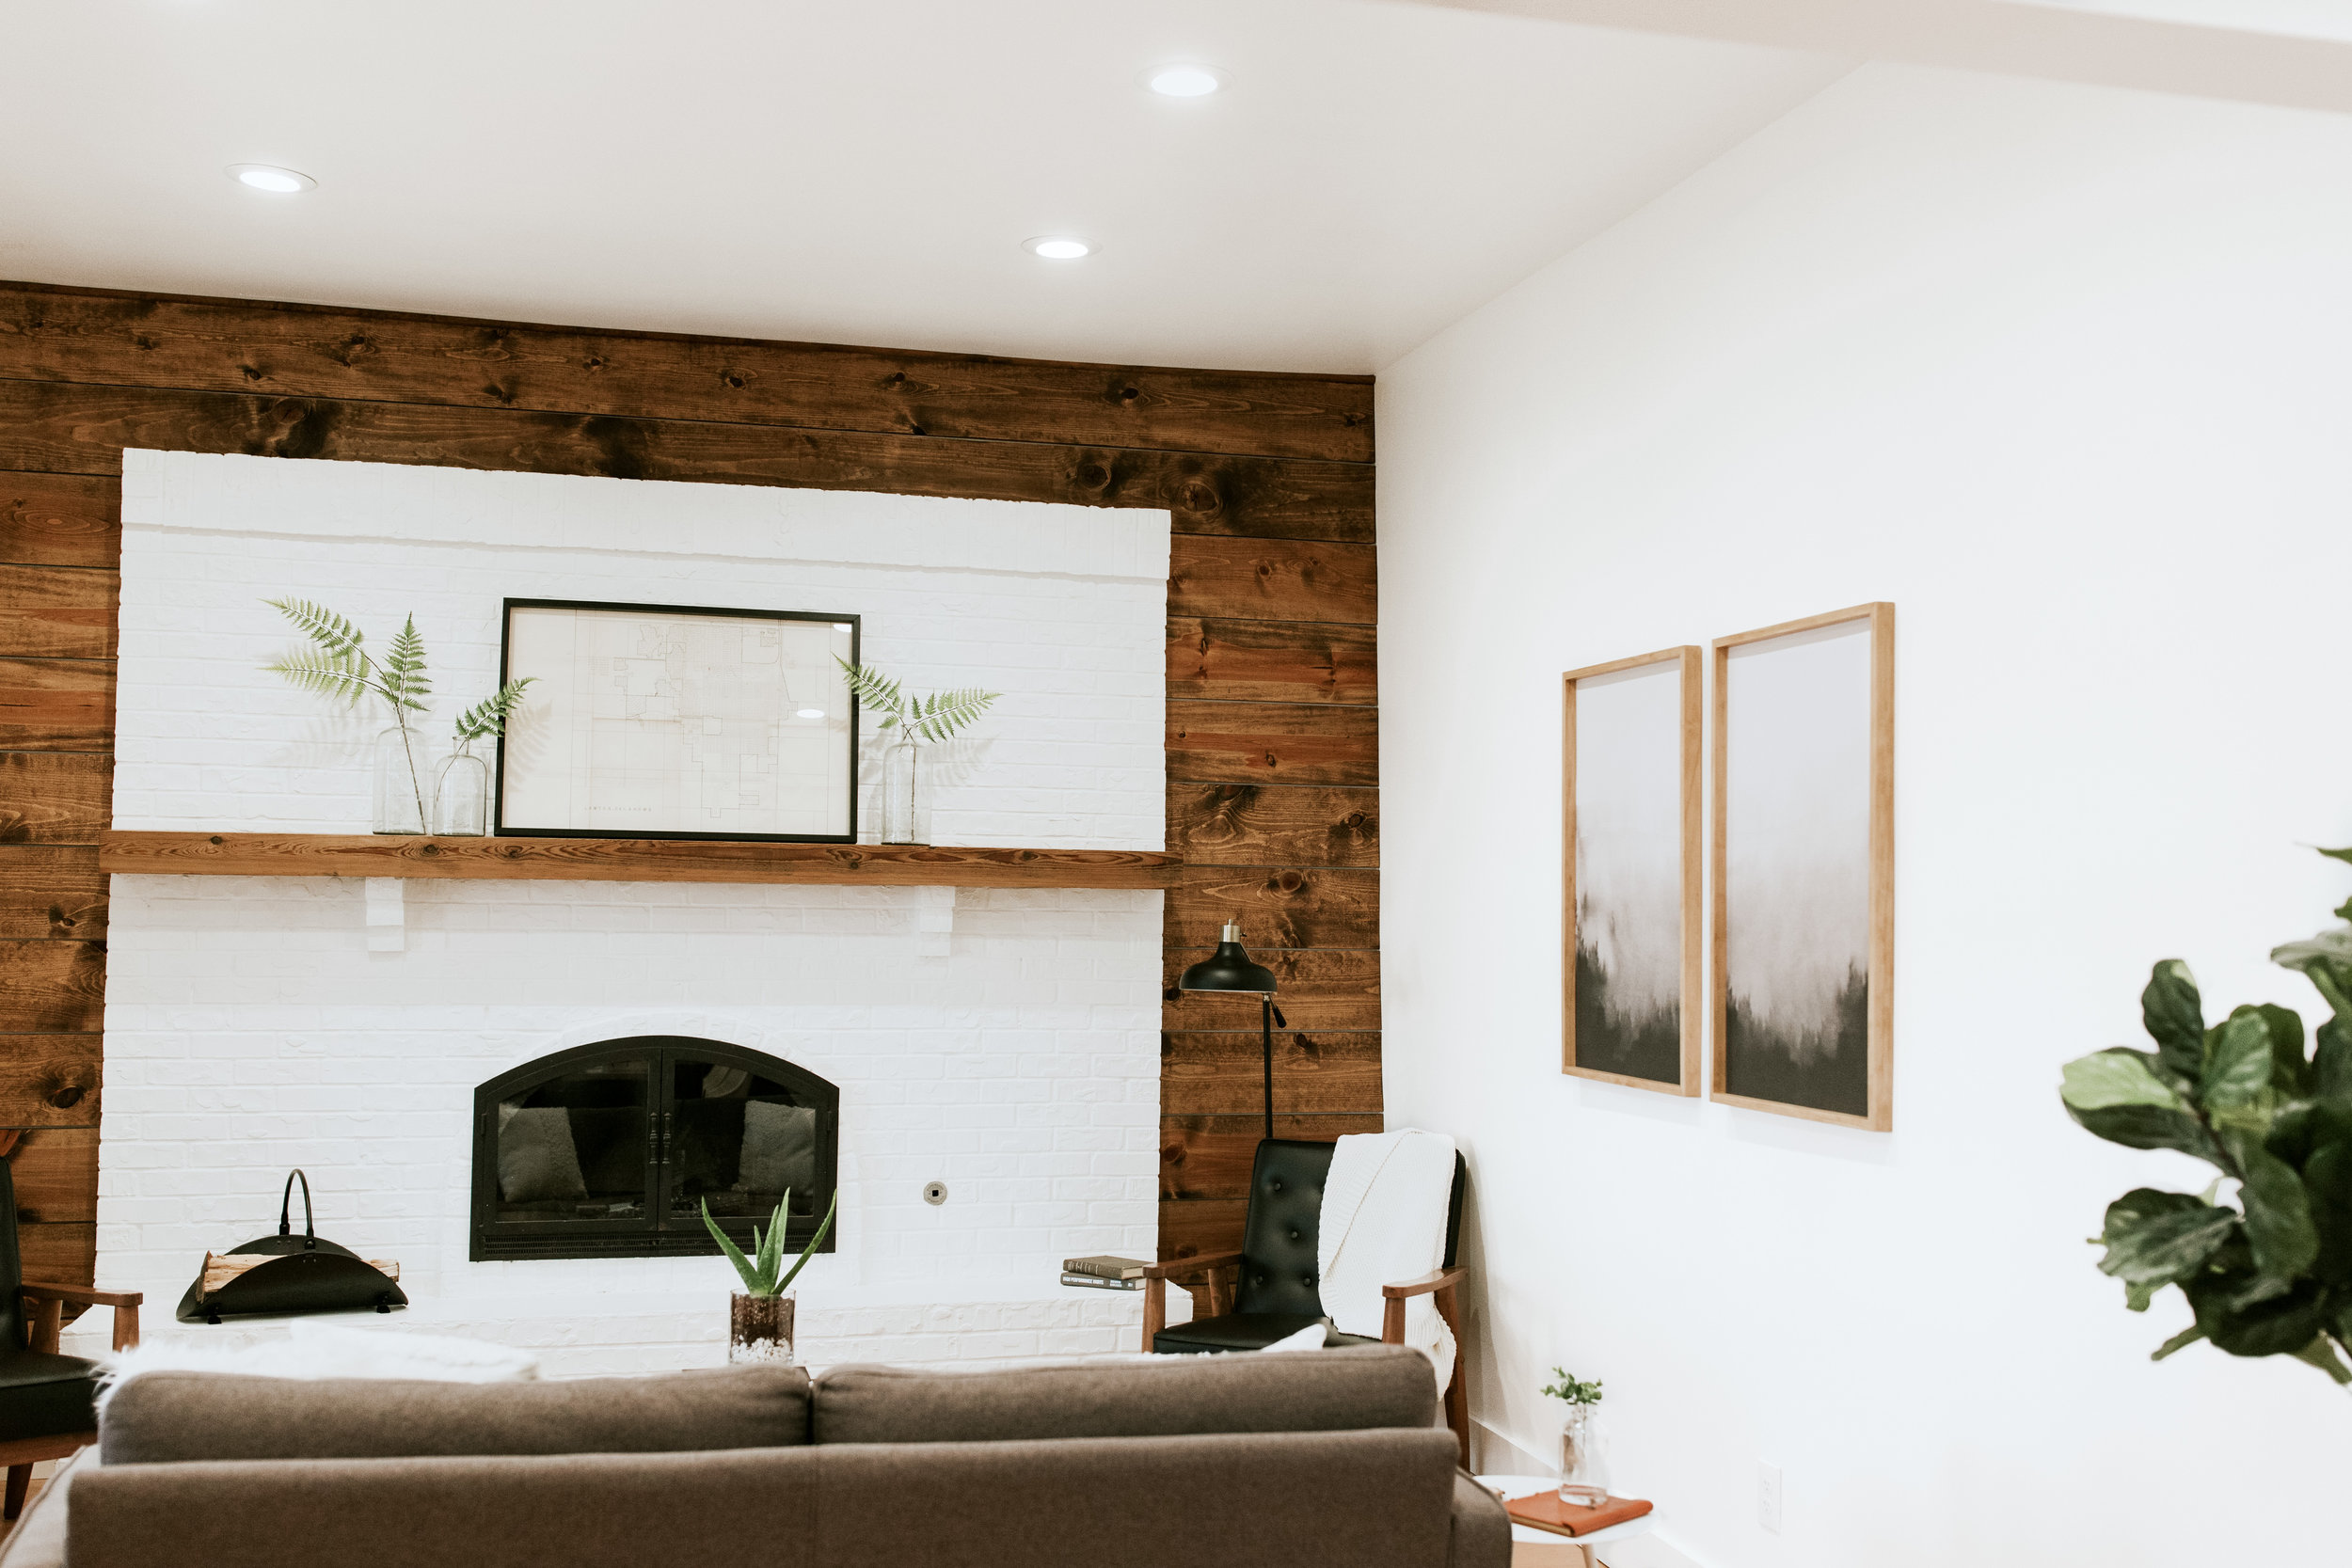 The full living room reveal - modern, mid century, outdoorsy, and minimal style home